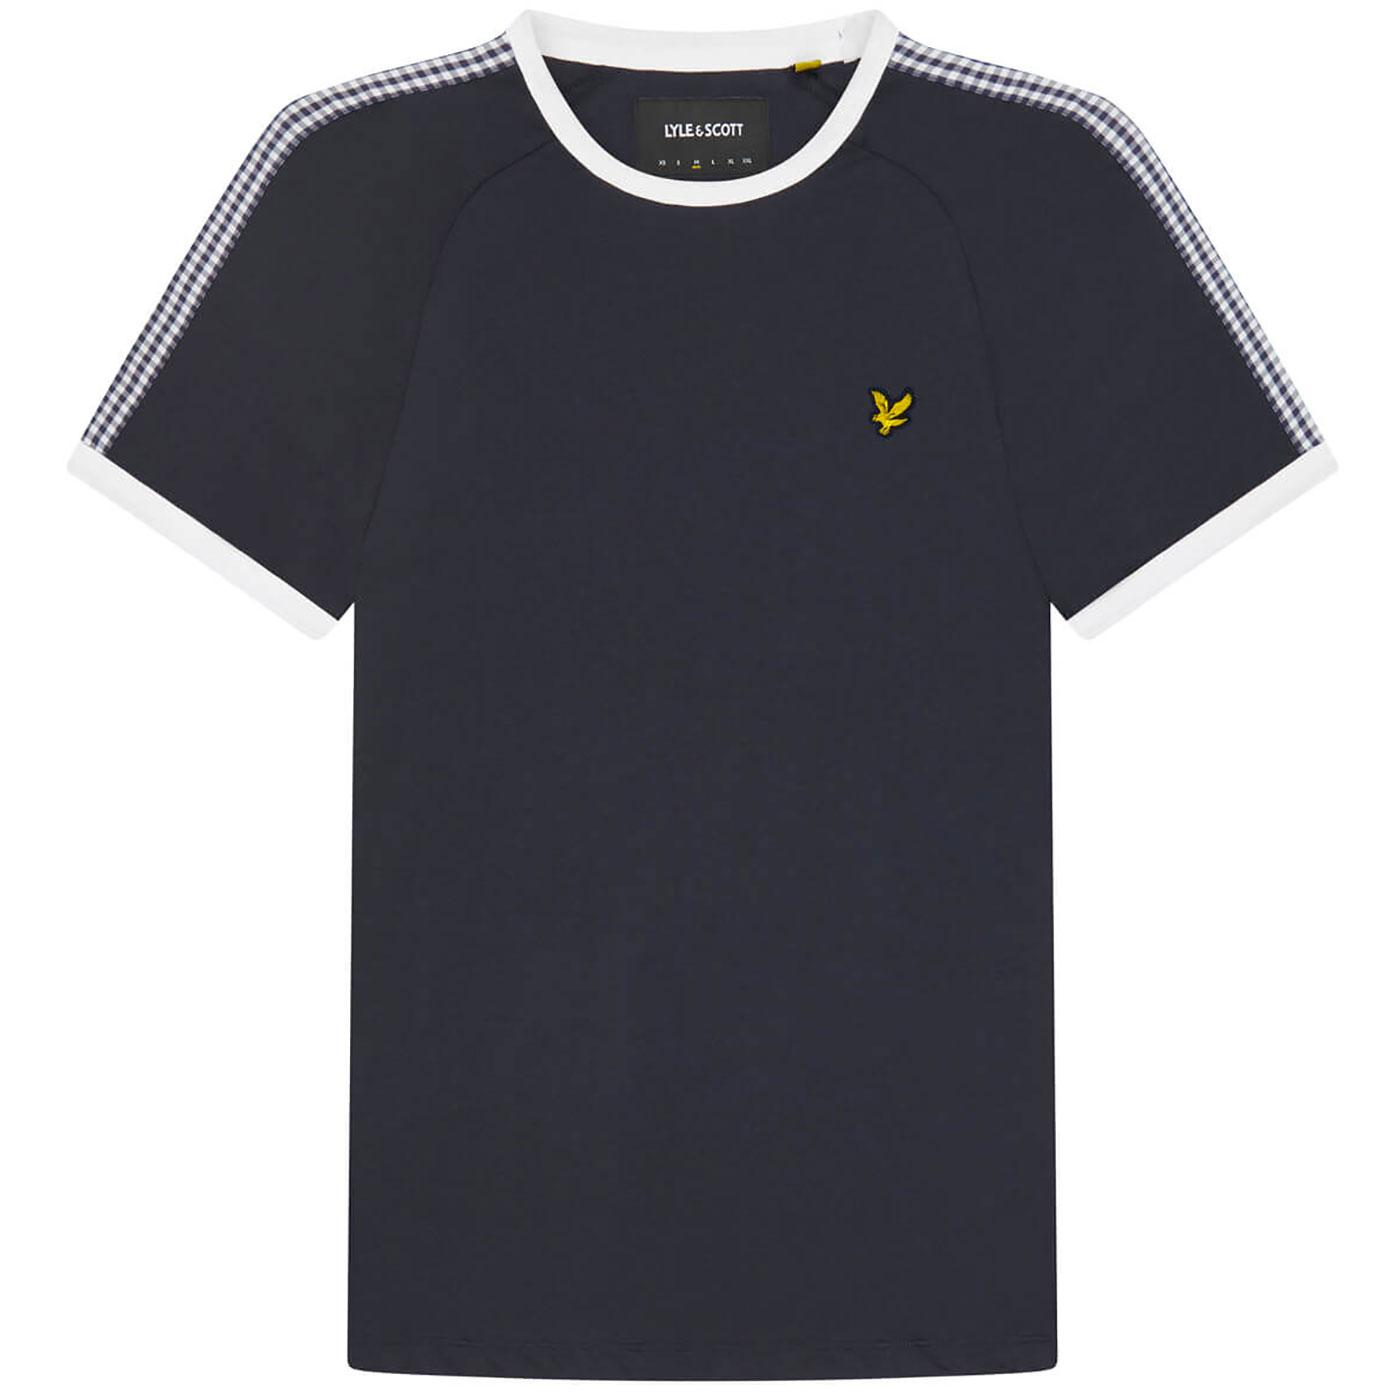 LYLE & SCOTT Retro Gingham Stripe Ringer Tee (DN)